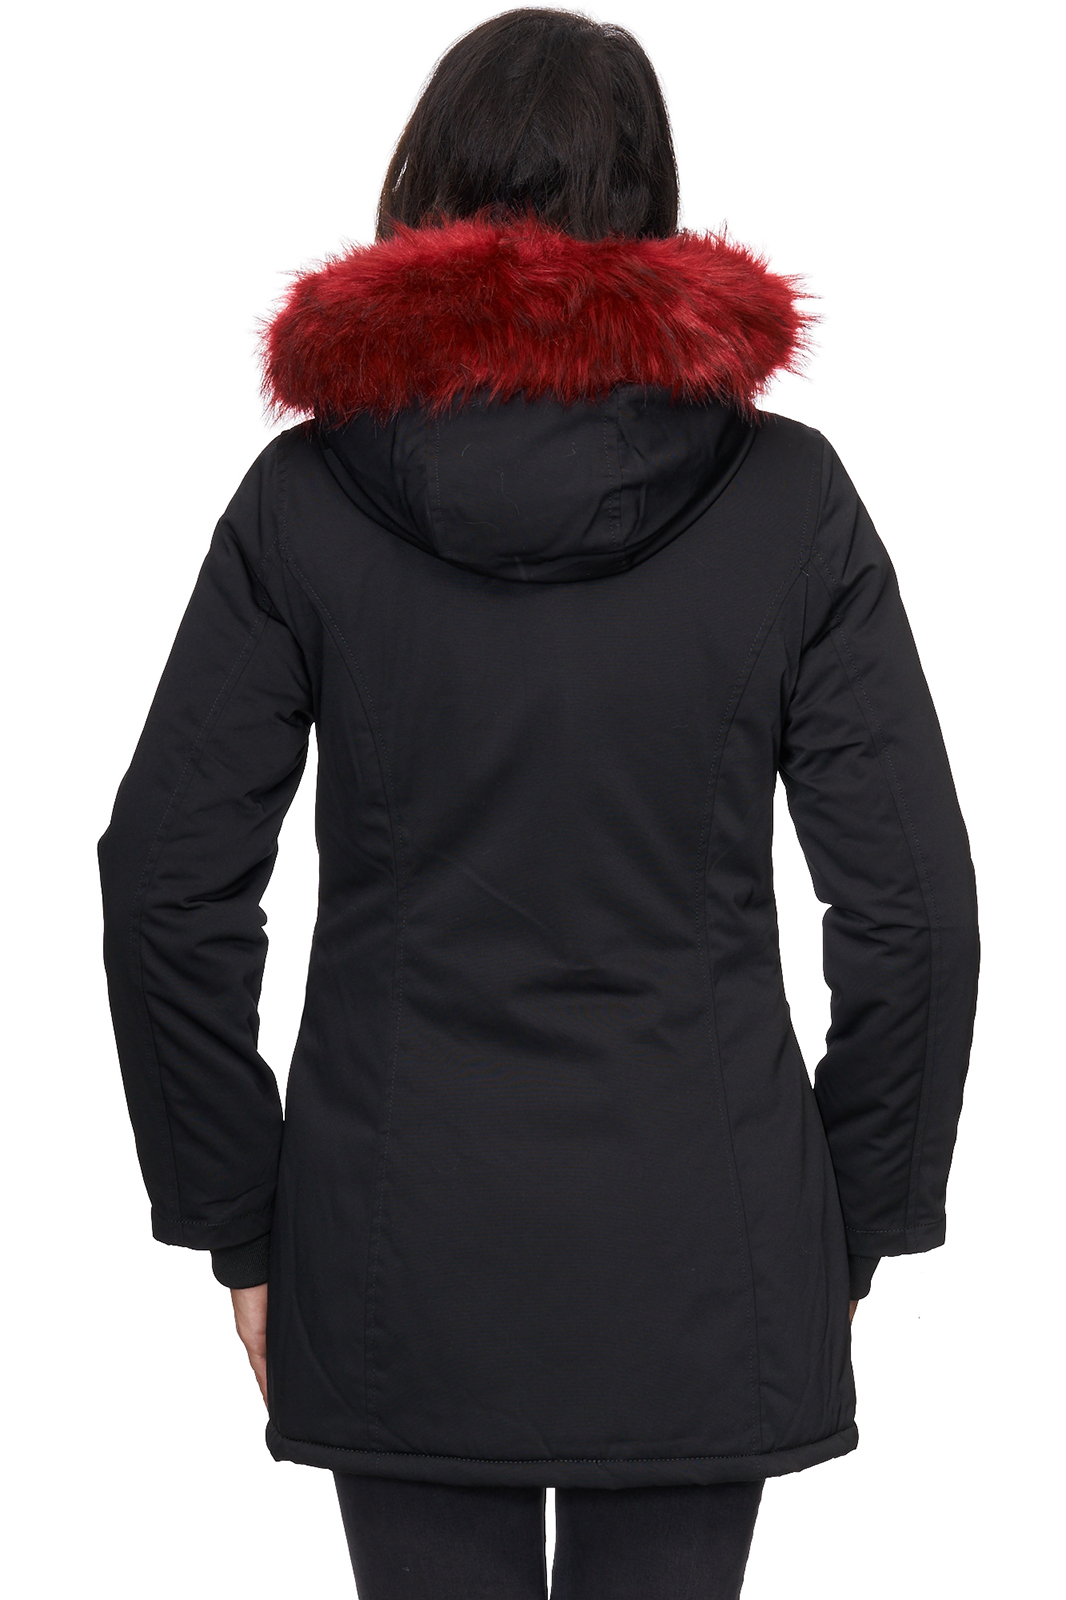 outdoor damen jacke winterjacke warme damenjacke parka mantel lang d 224 s xl ebay. Black Bedroom Furniture Sets. Home Design Ideas